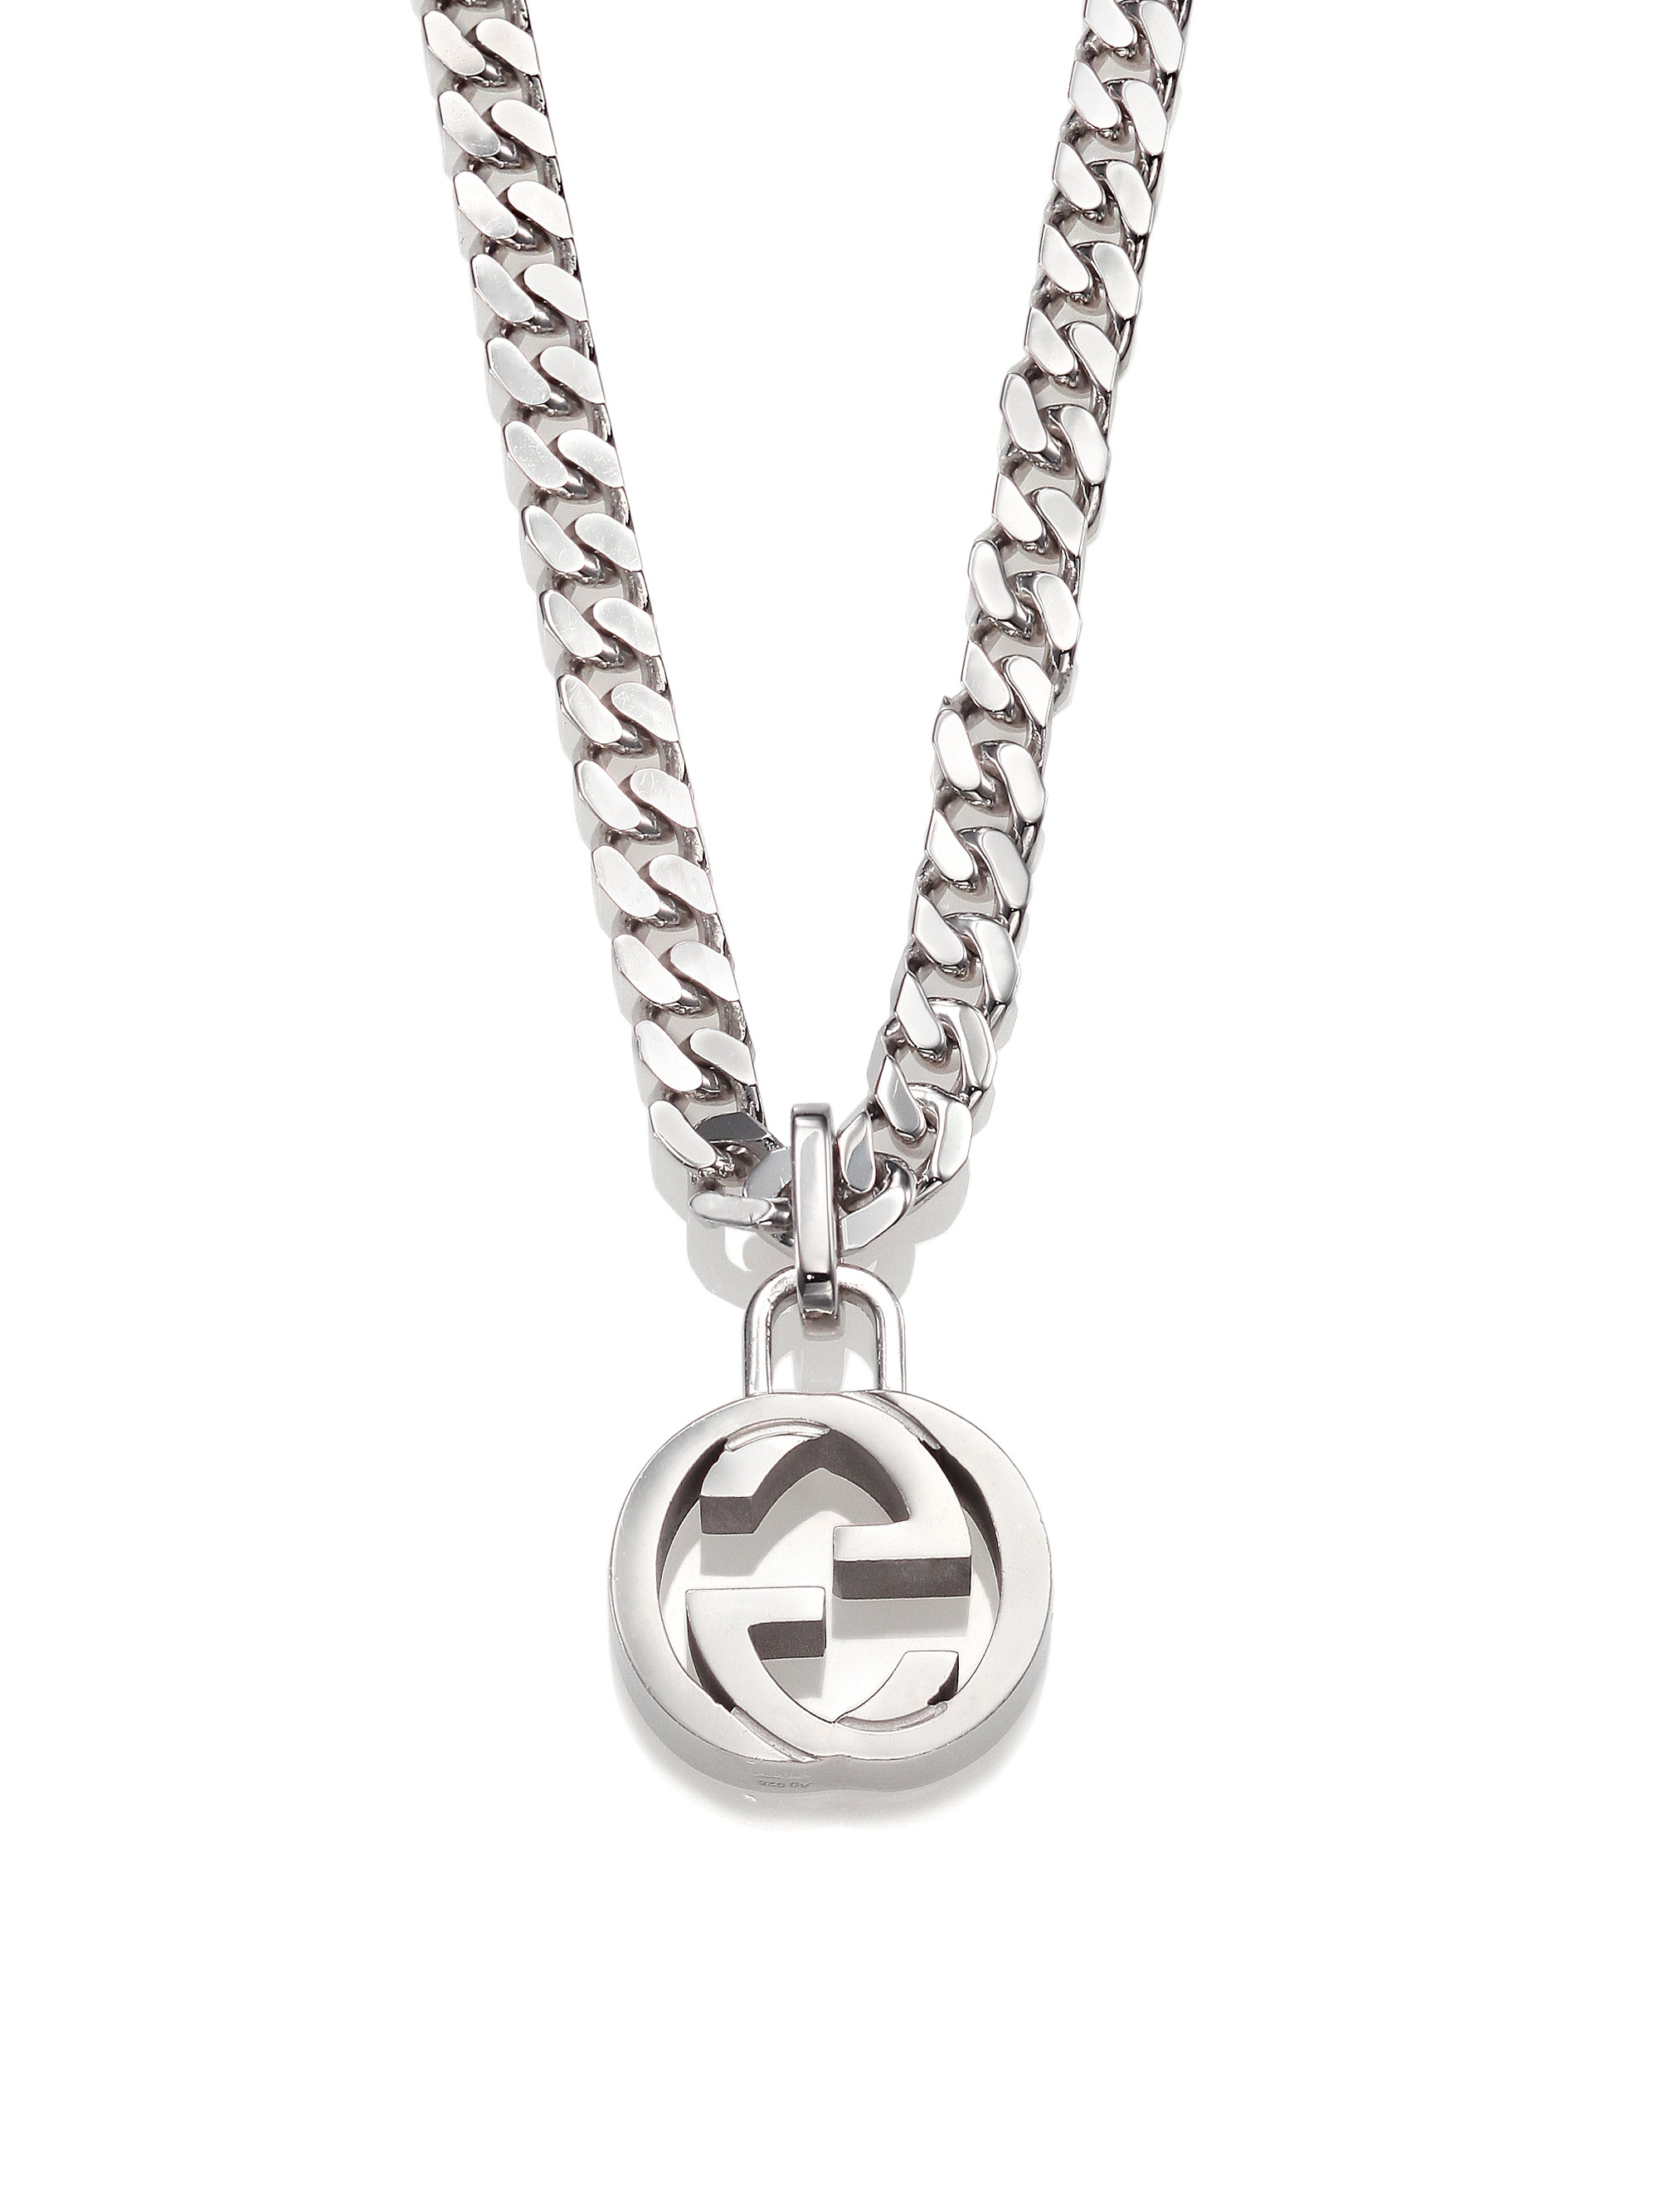 Gucci Interlocking G Sterling Silver Pendant Necklace